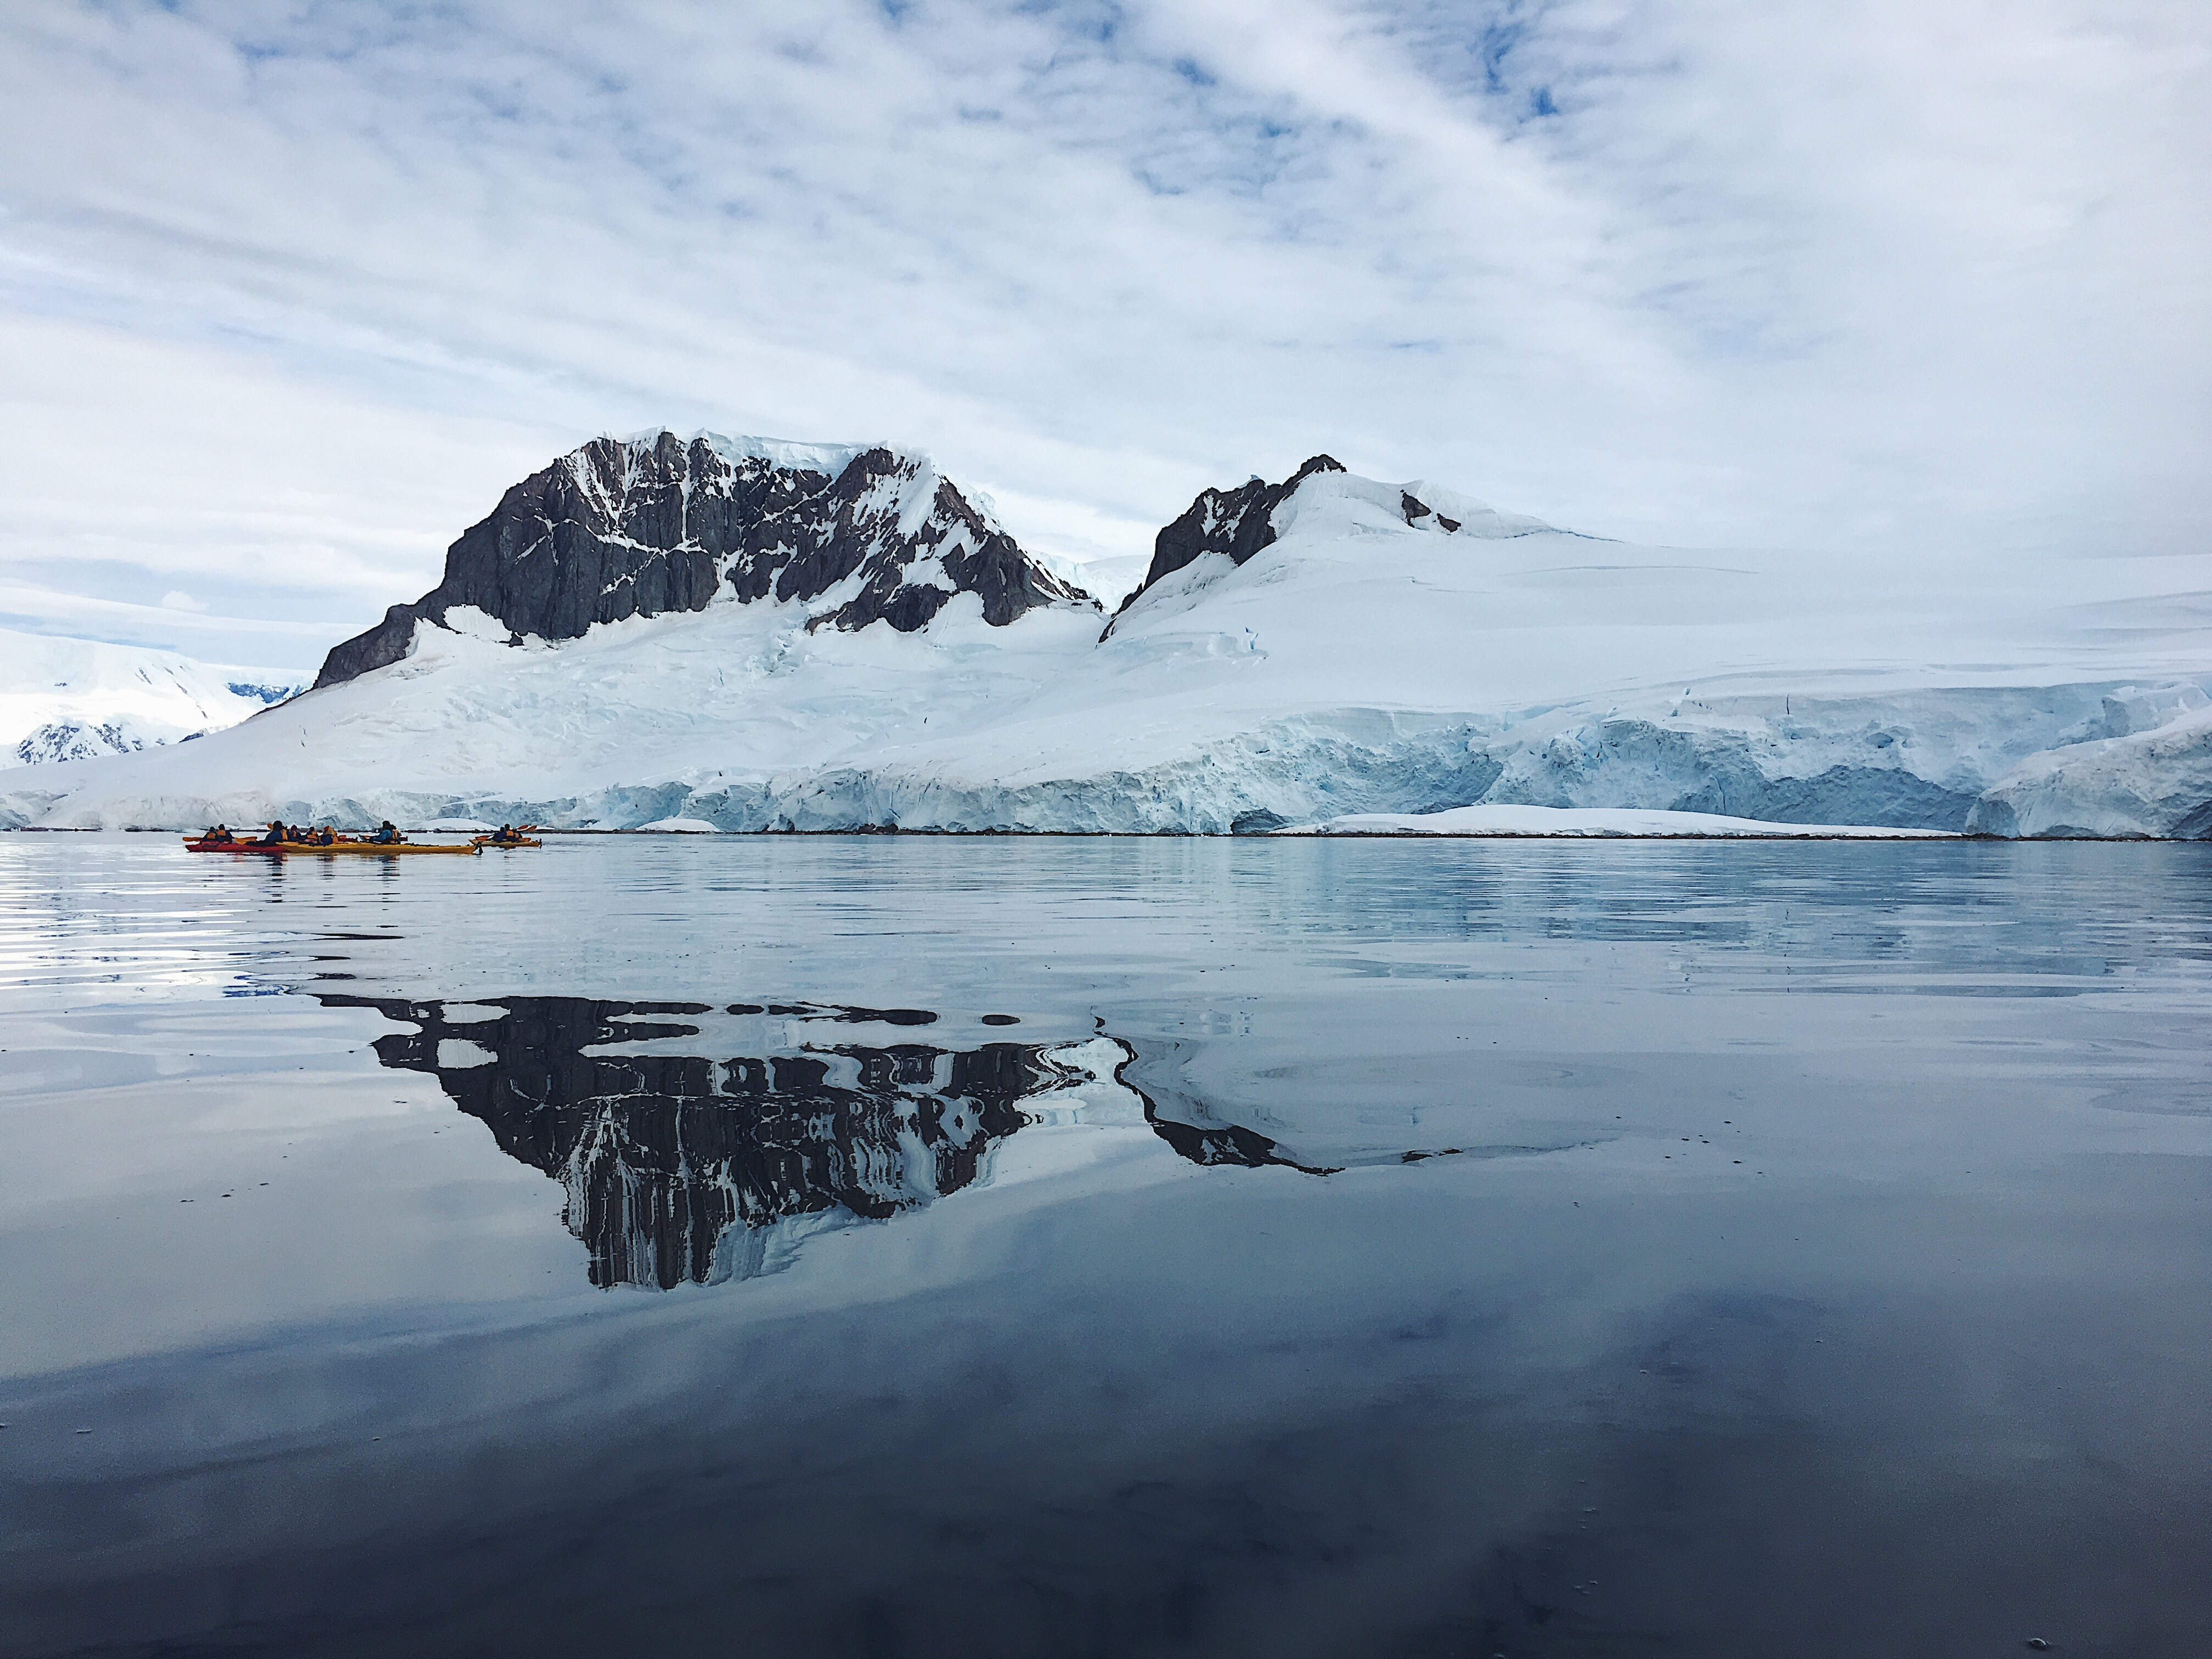 Kayaking on the waters of Antarctica. Experience the fragile landscapes.